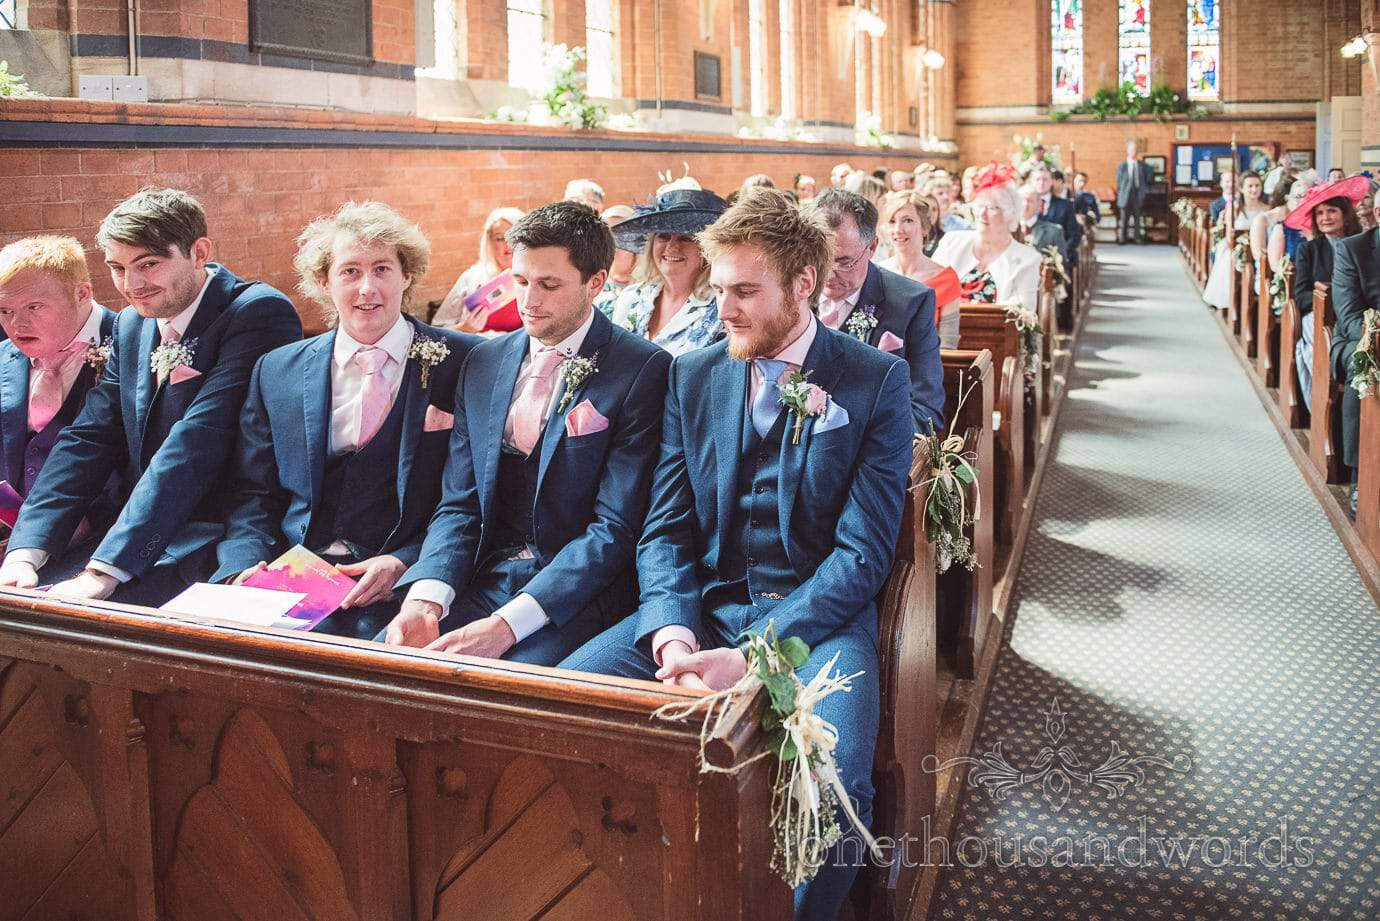 Groomsmen in blue shits and pink ties at church wedding in Leicestershire